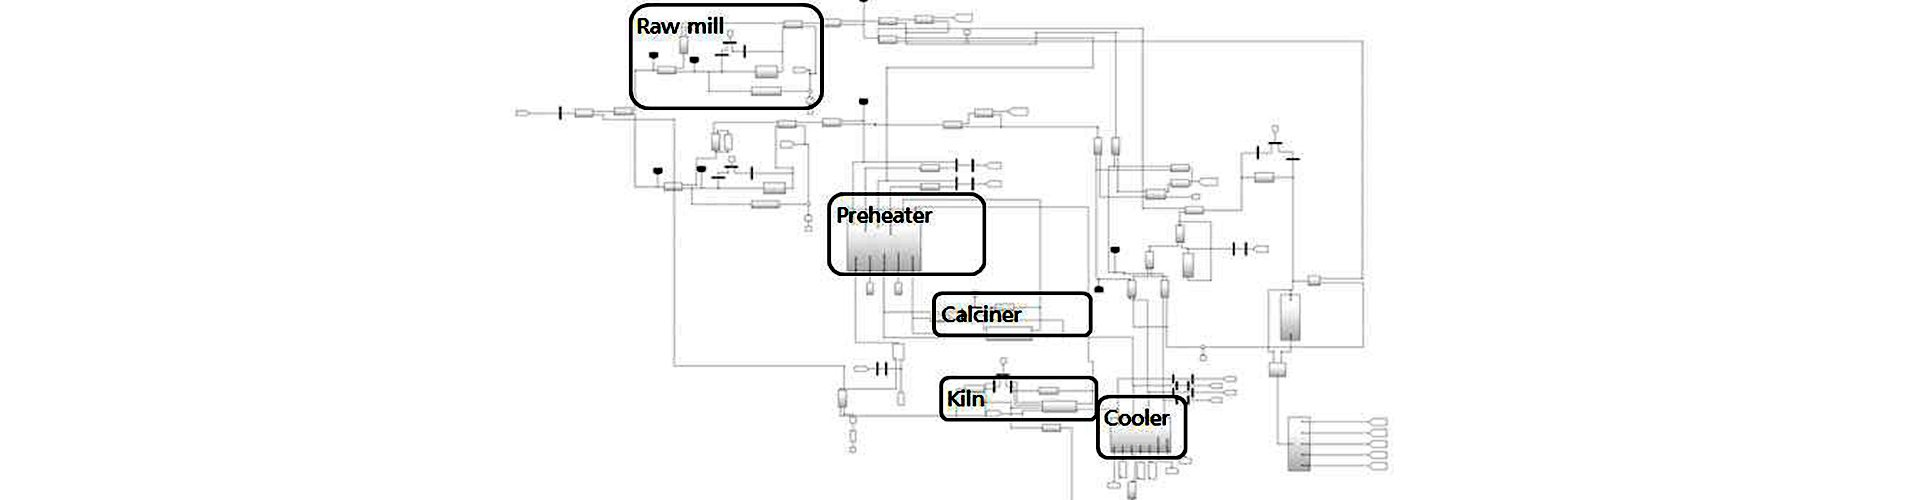 Flow Sheet for Process Simulation of Pyro Cement Production